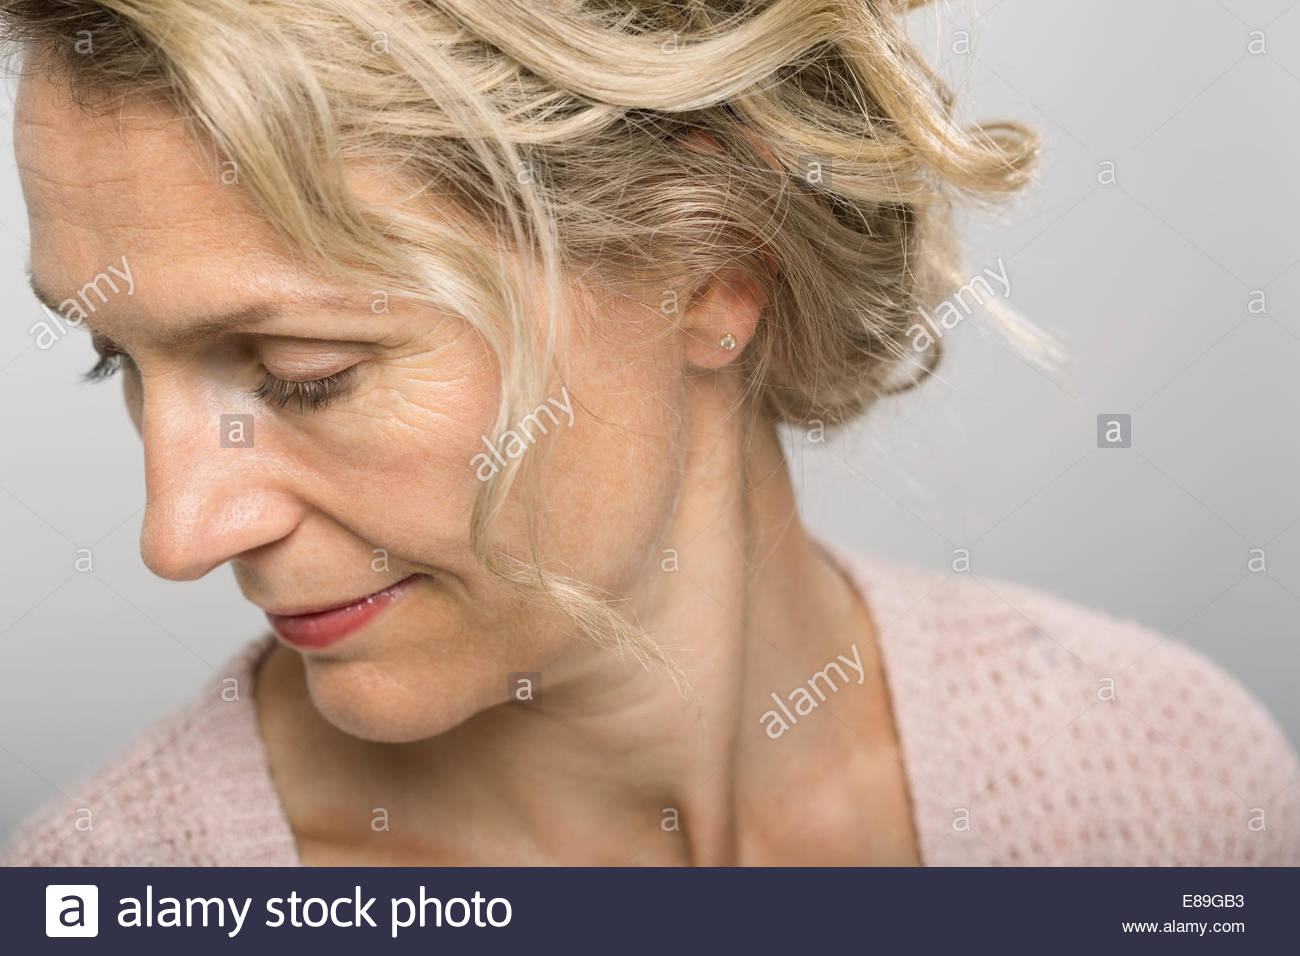 Close up of blonde woman looking down - Stock Image